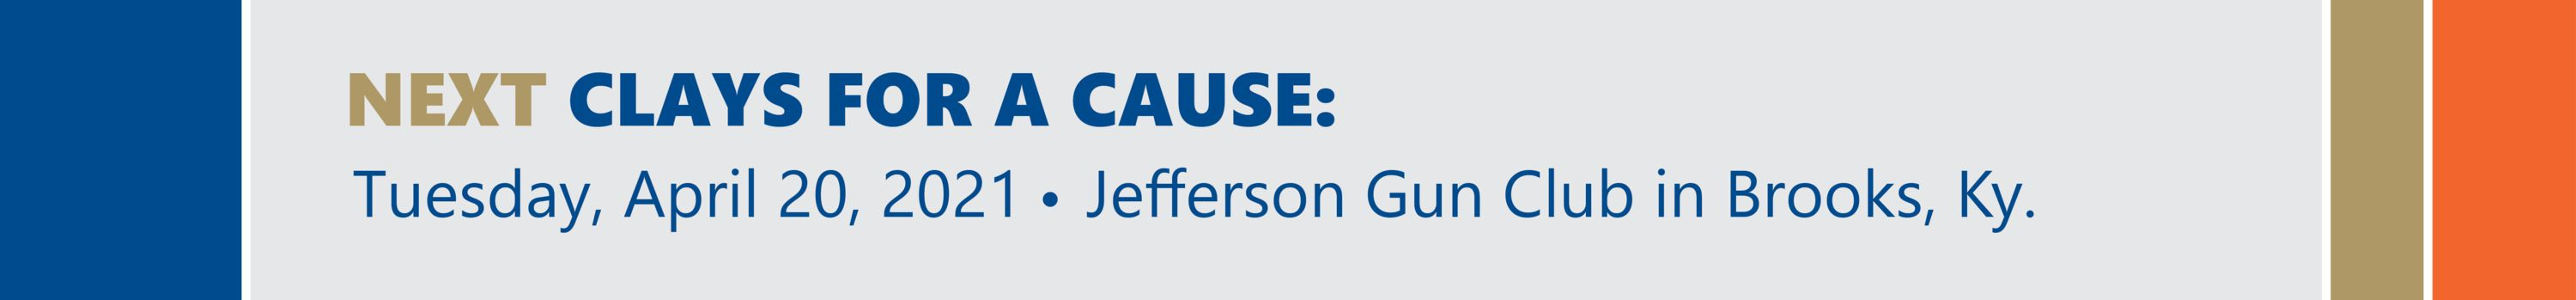 Next Clays for a Cause is on April 20 2021 at Jefferson Gun Club